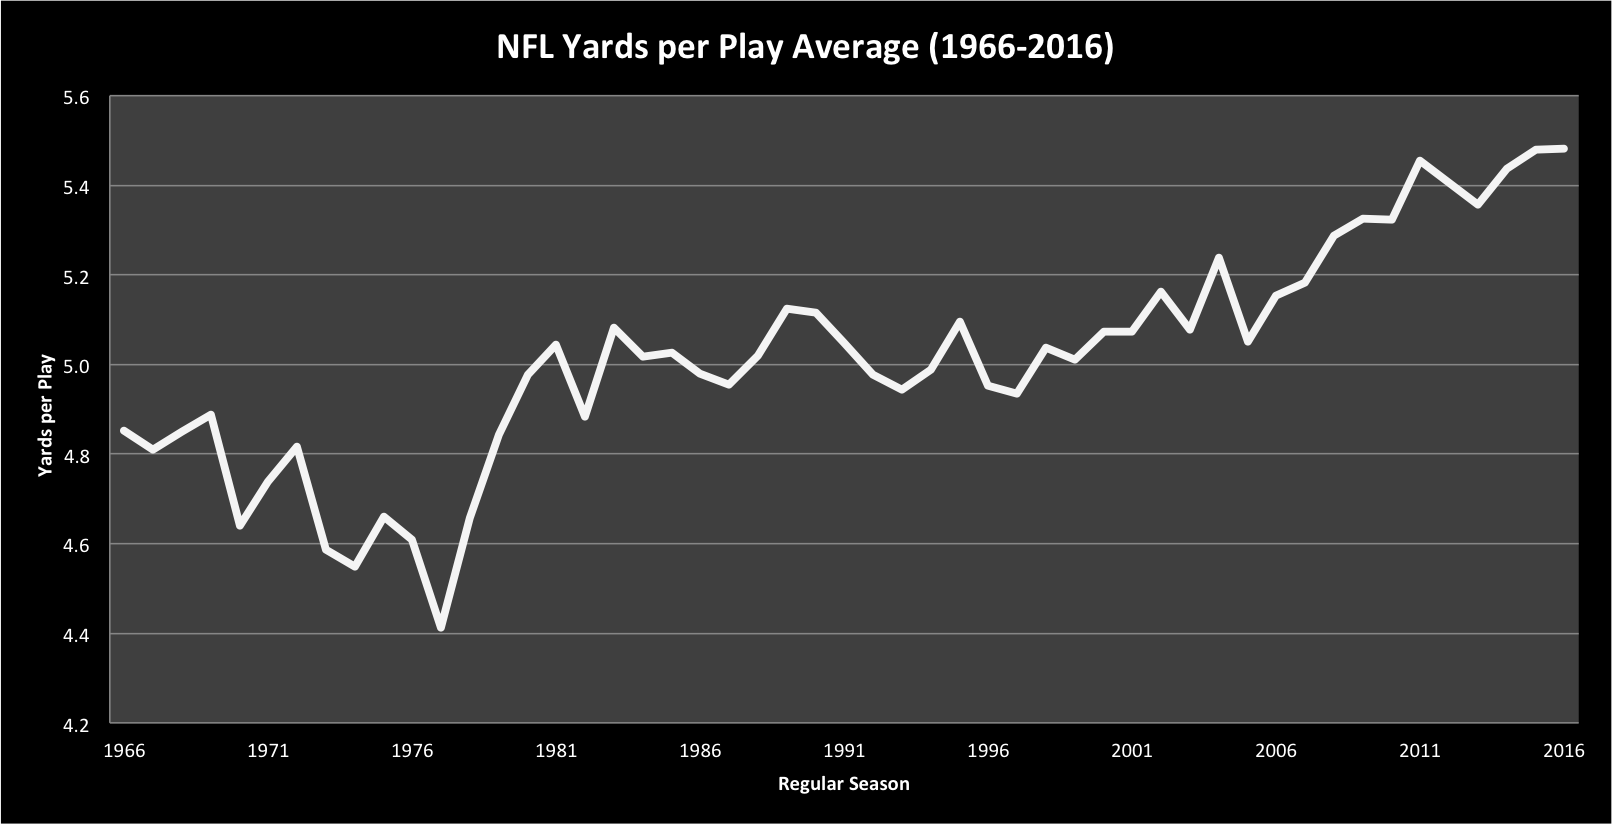 NFL Yards per Play Averages